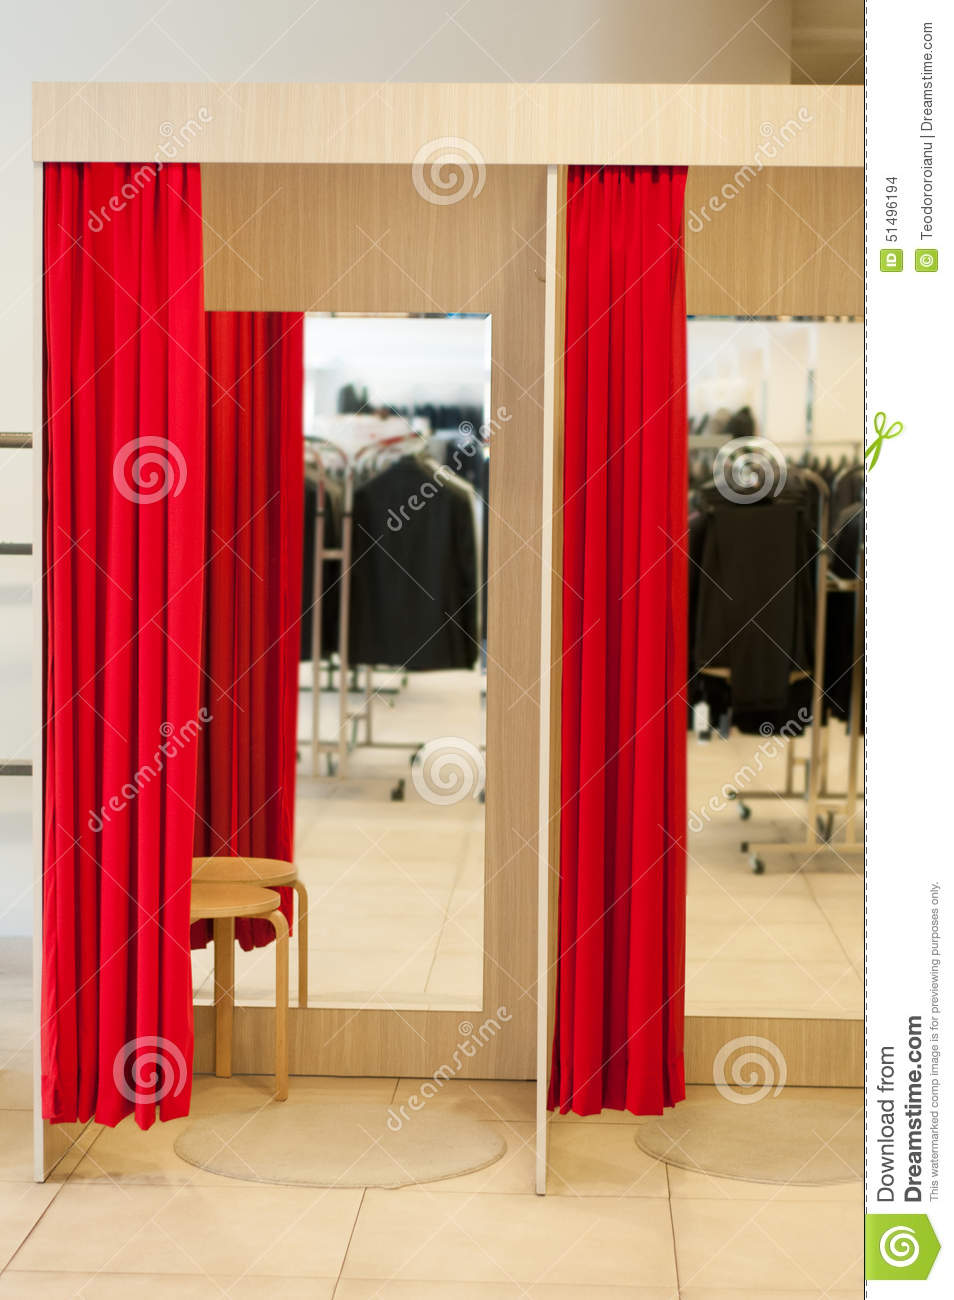 Fitting Room Stock Photo Image Of Material Background